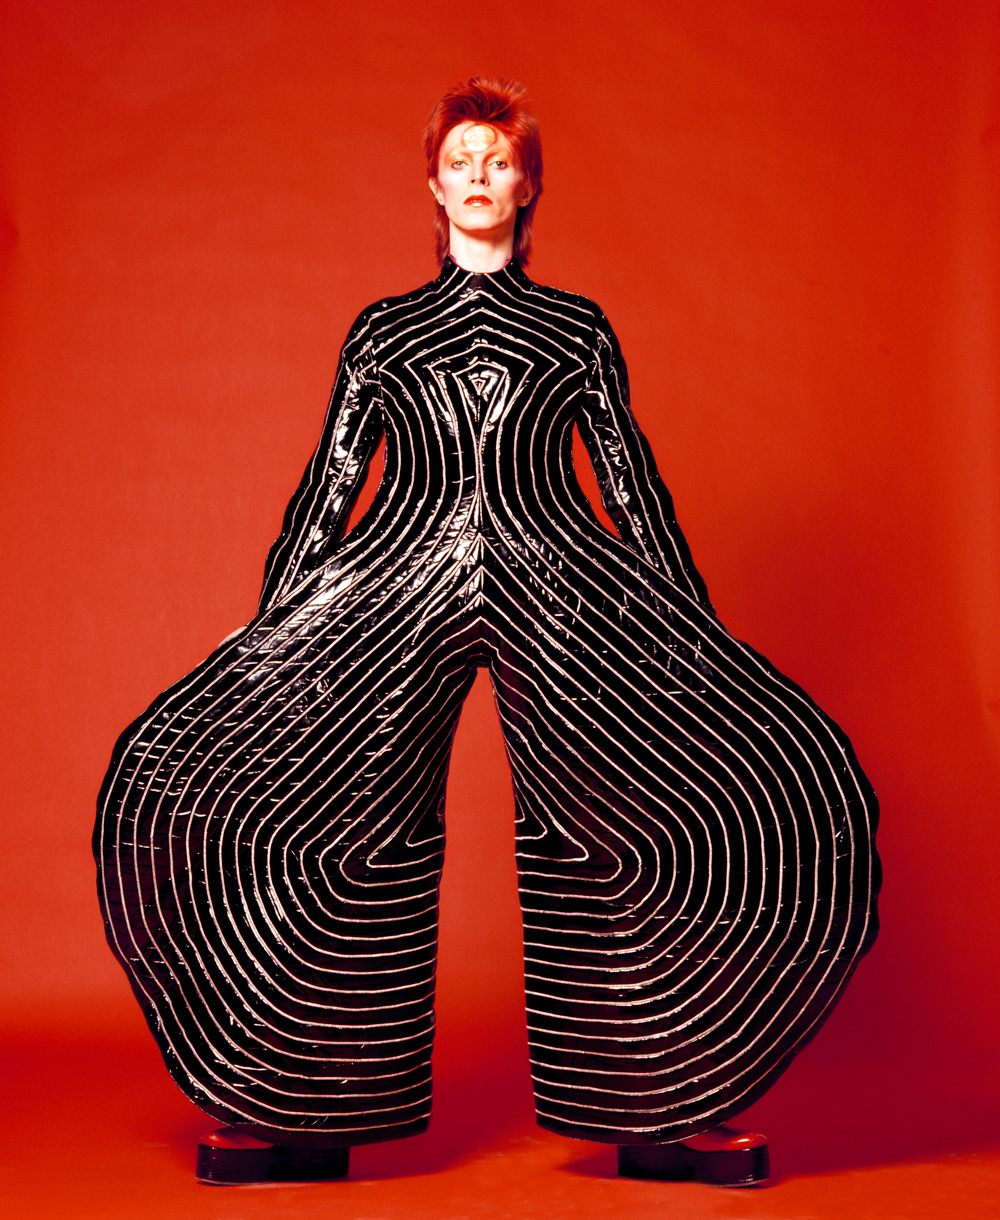 David Bowie Striped bodysuit for Aladdin Sane tour 1973